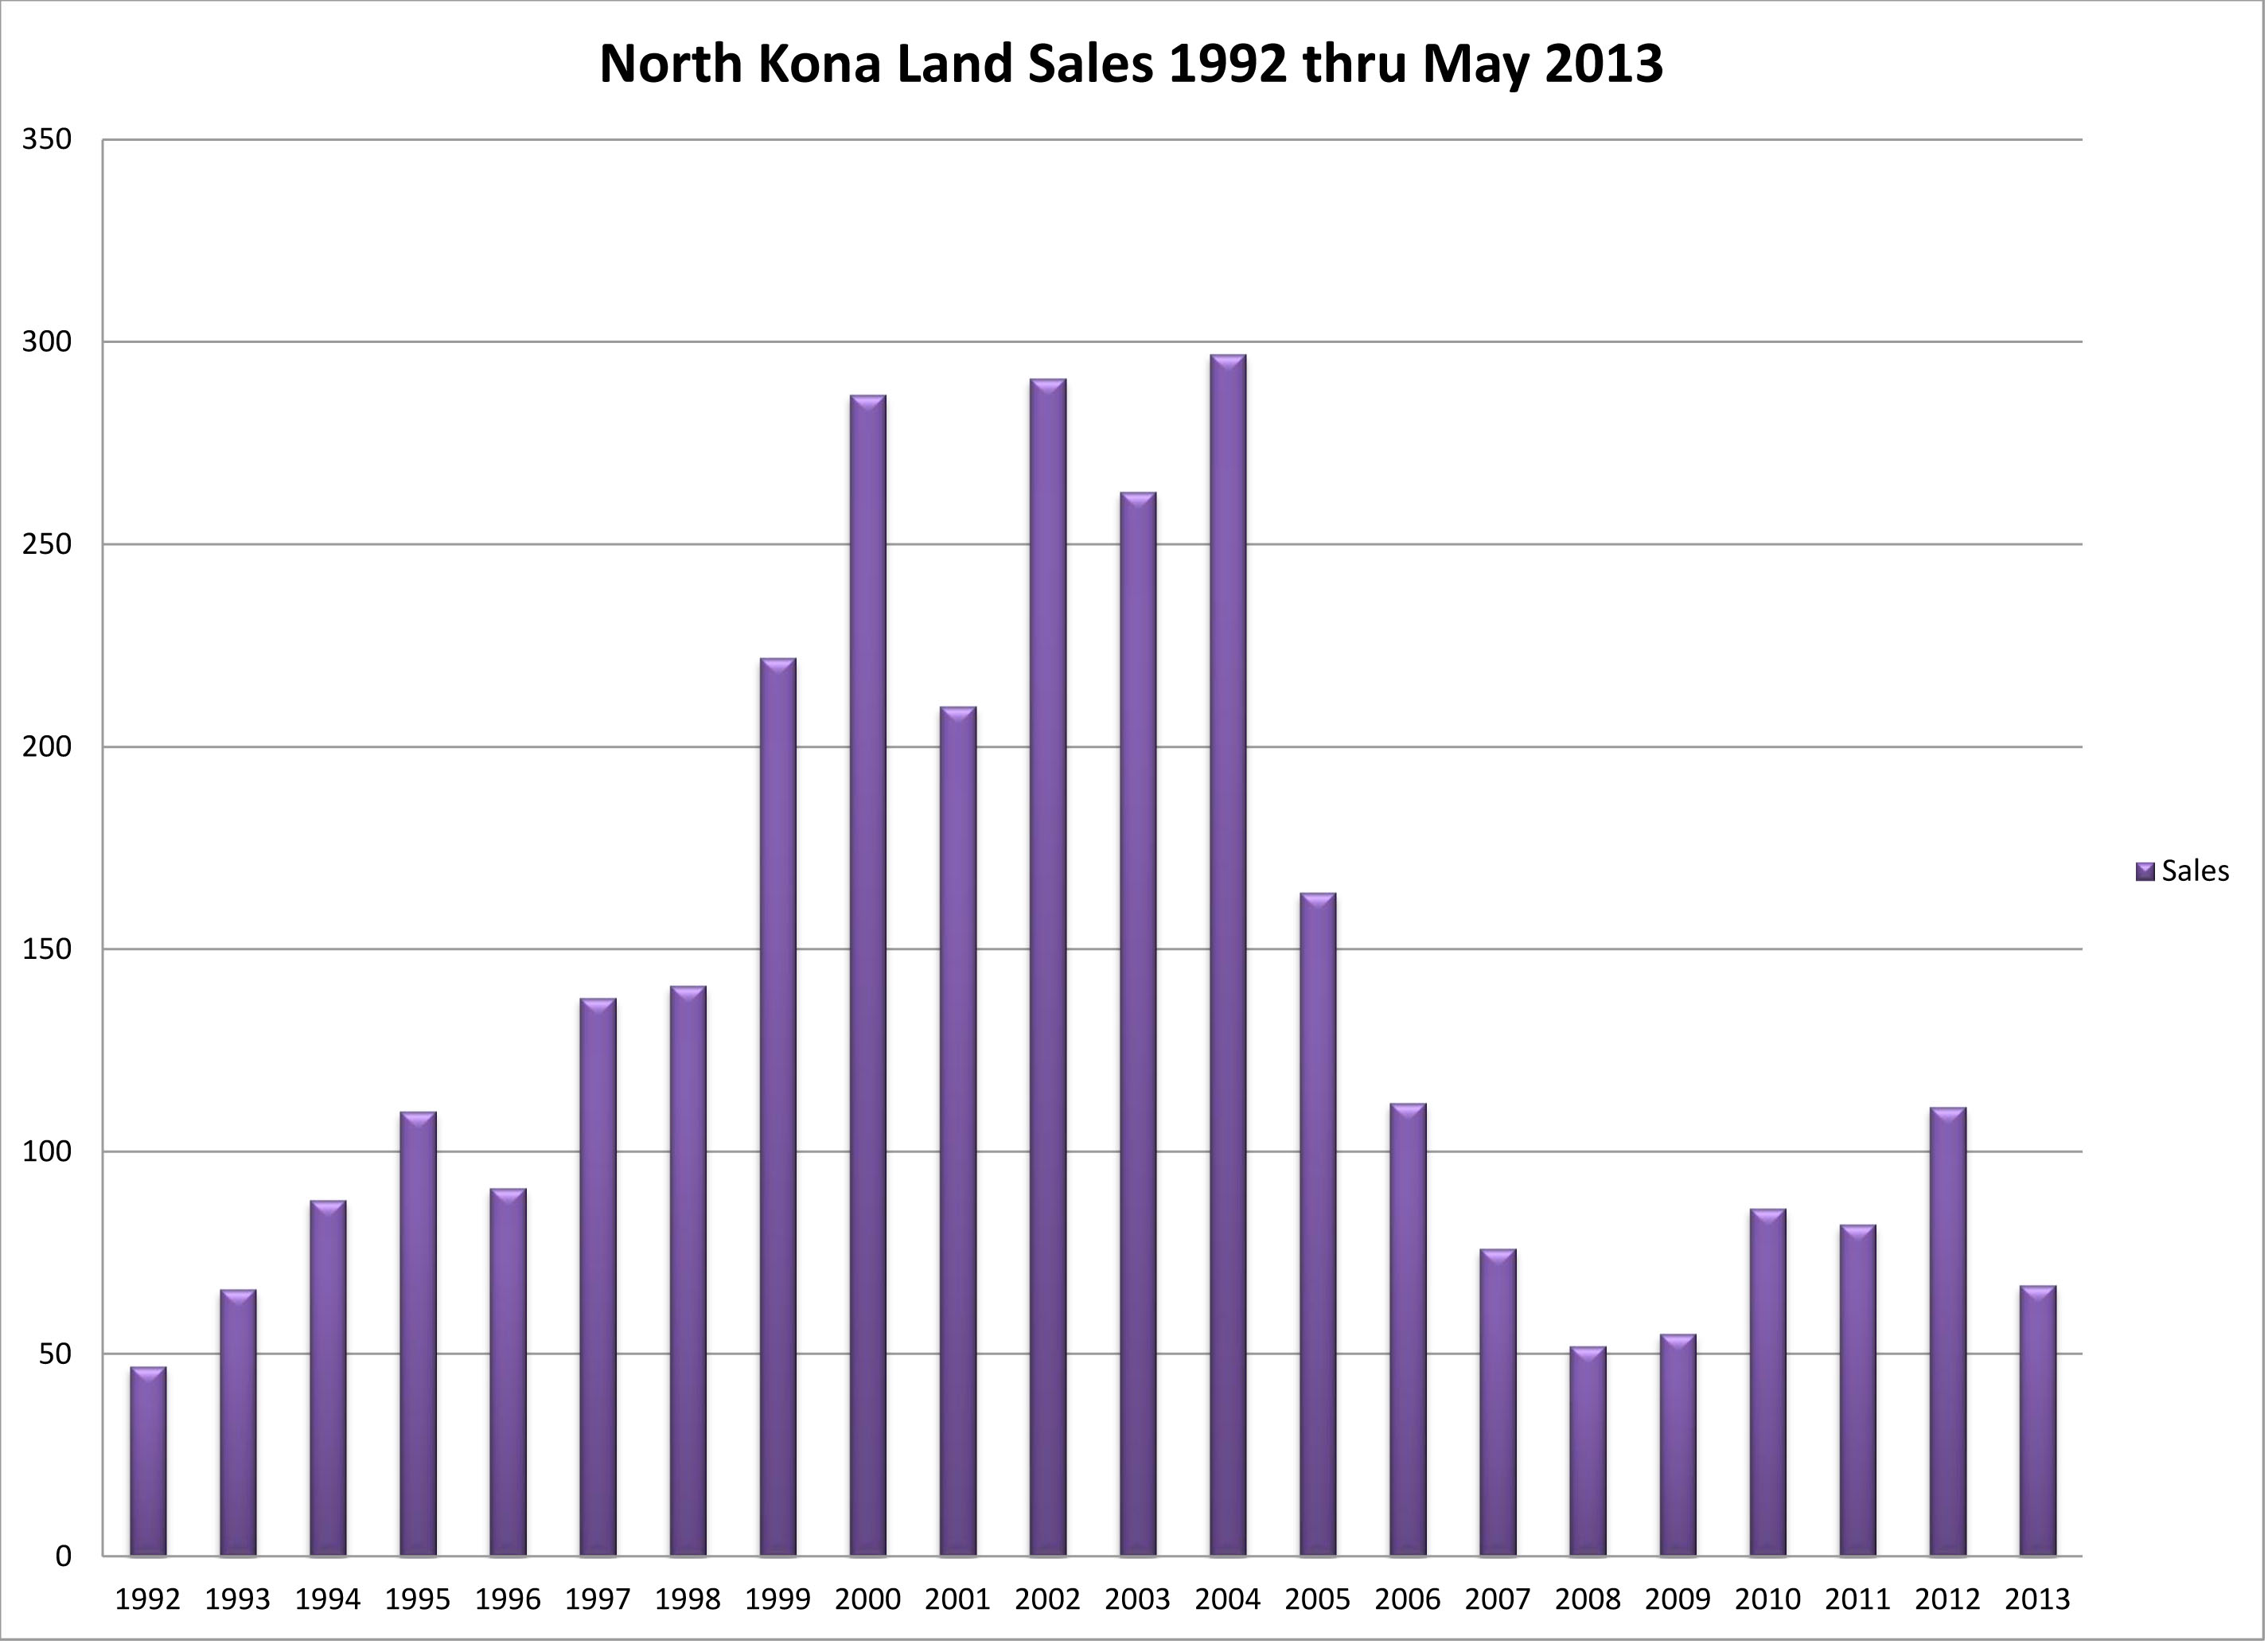 NK Land sales 92 to 13 annual